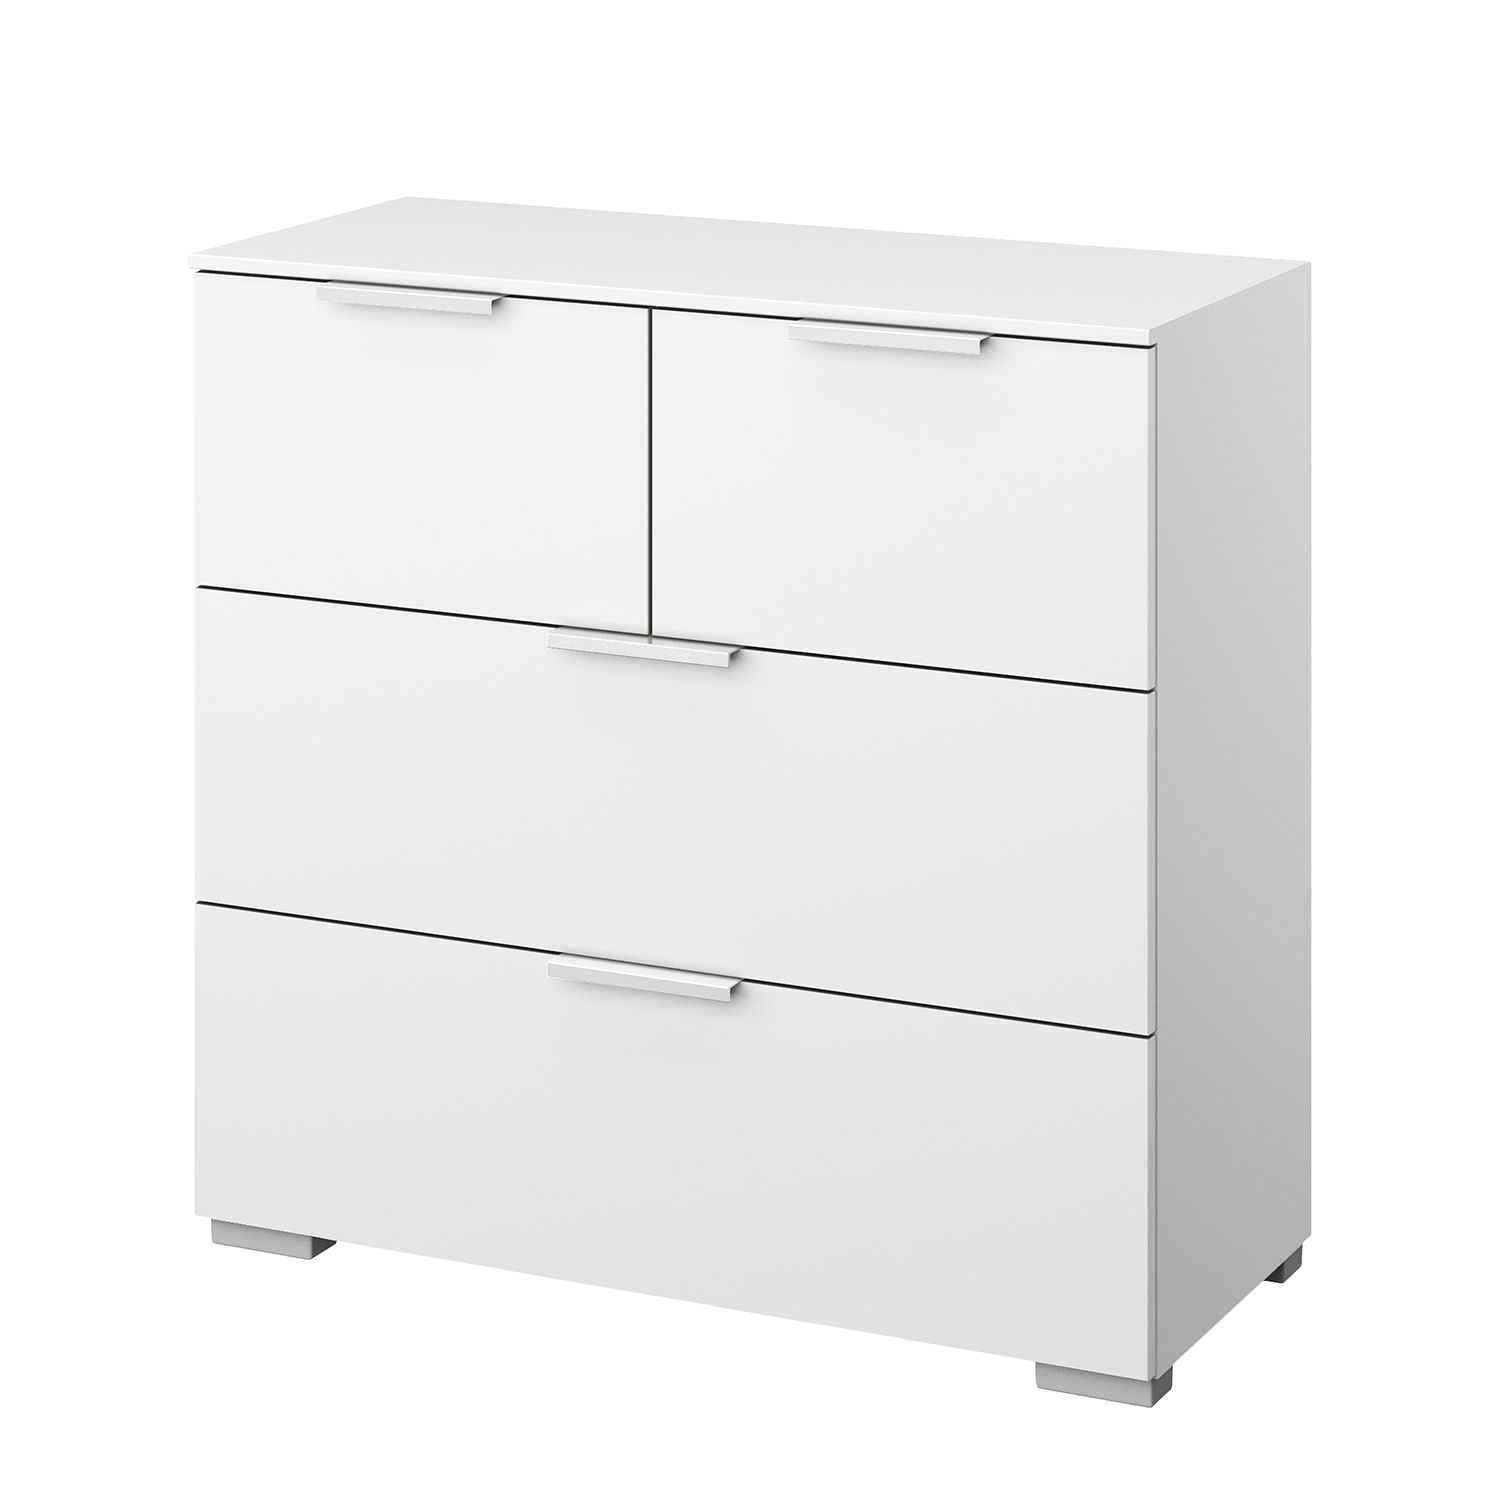 Commode SKØP III - Blanc alpin, SKØP